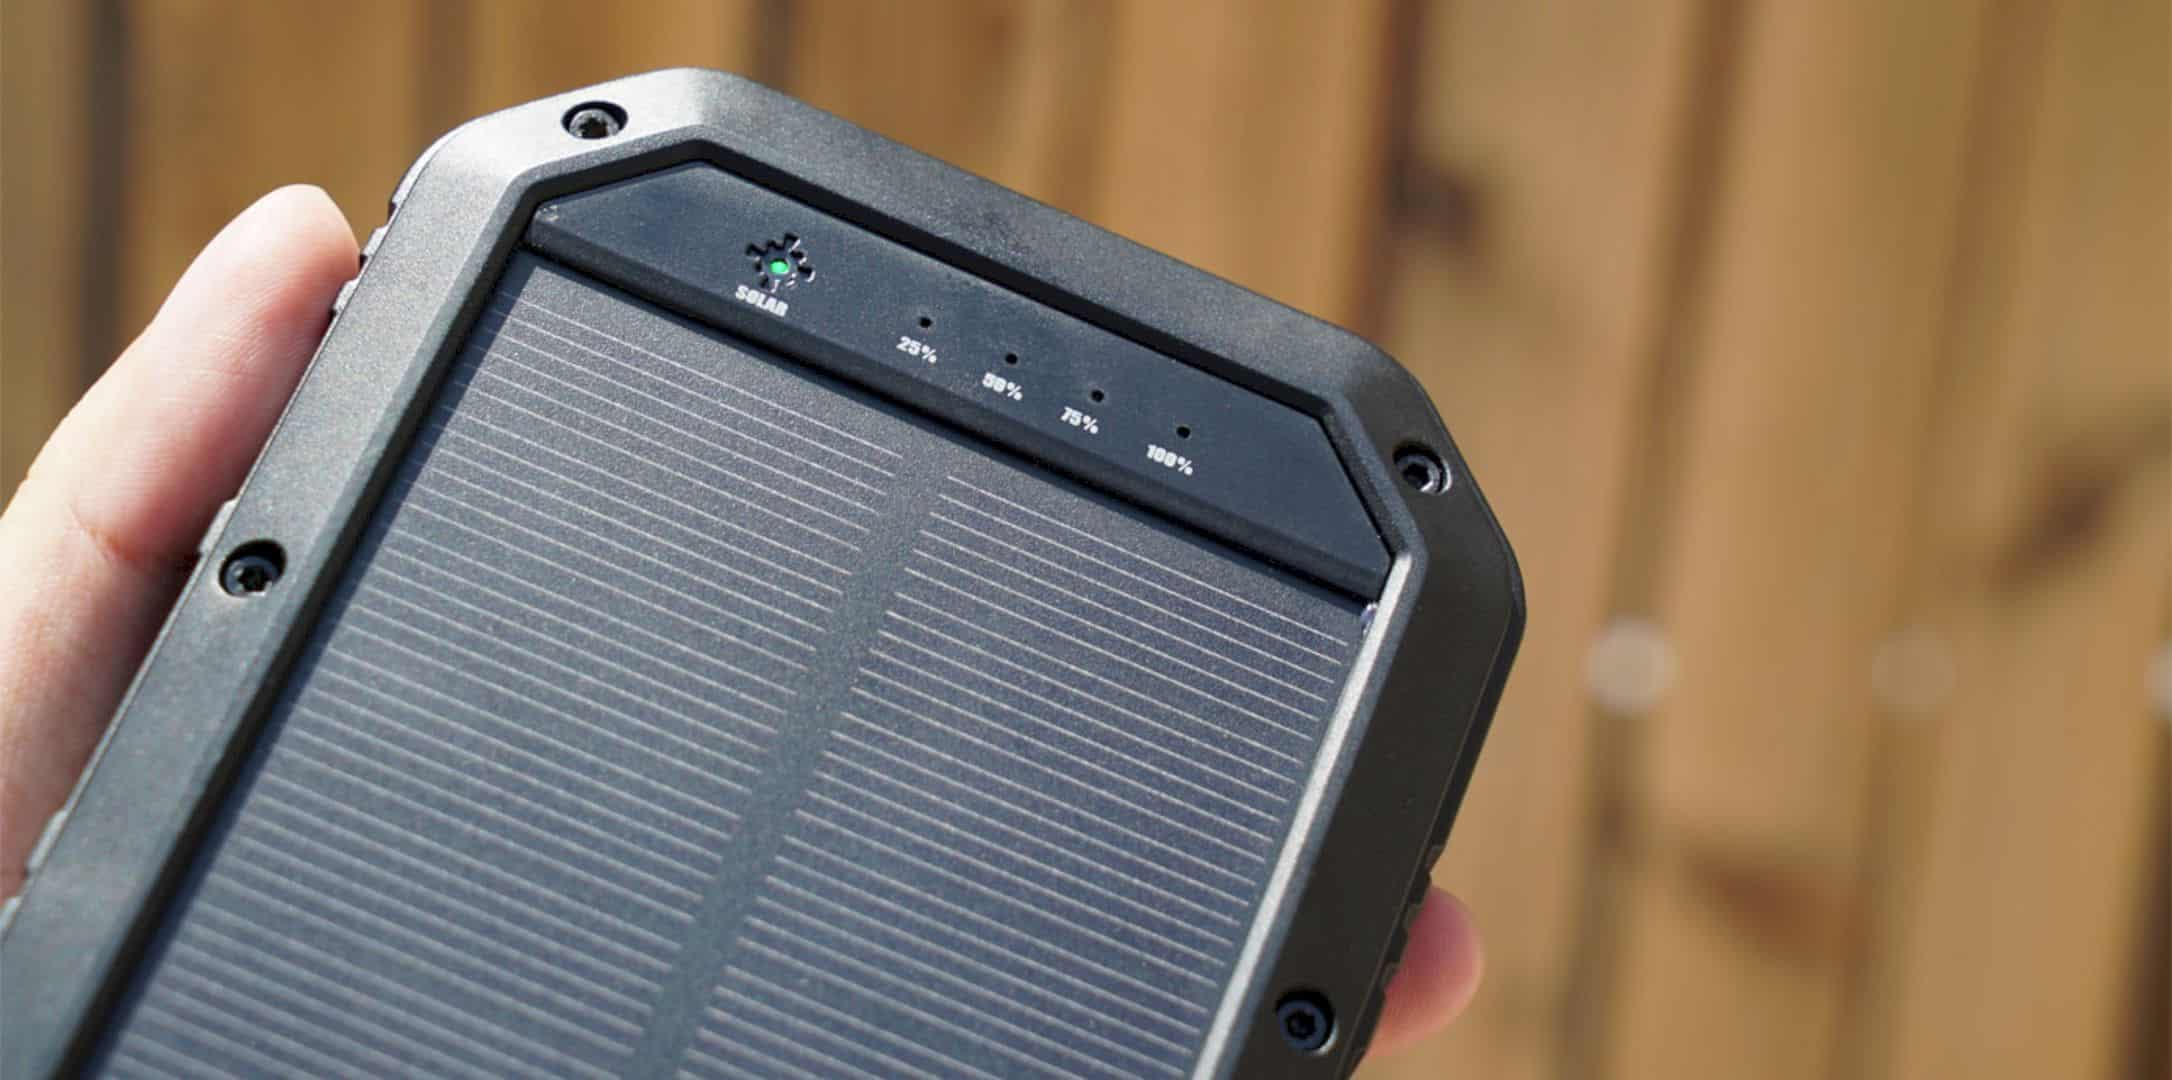 Halo The Best Solar Light Amp Power Supply For All Your